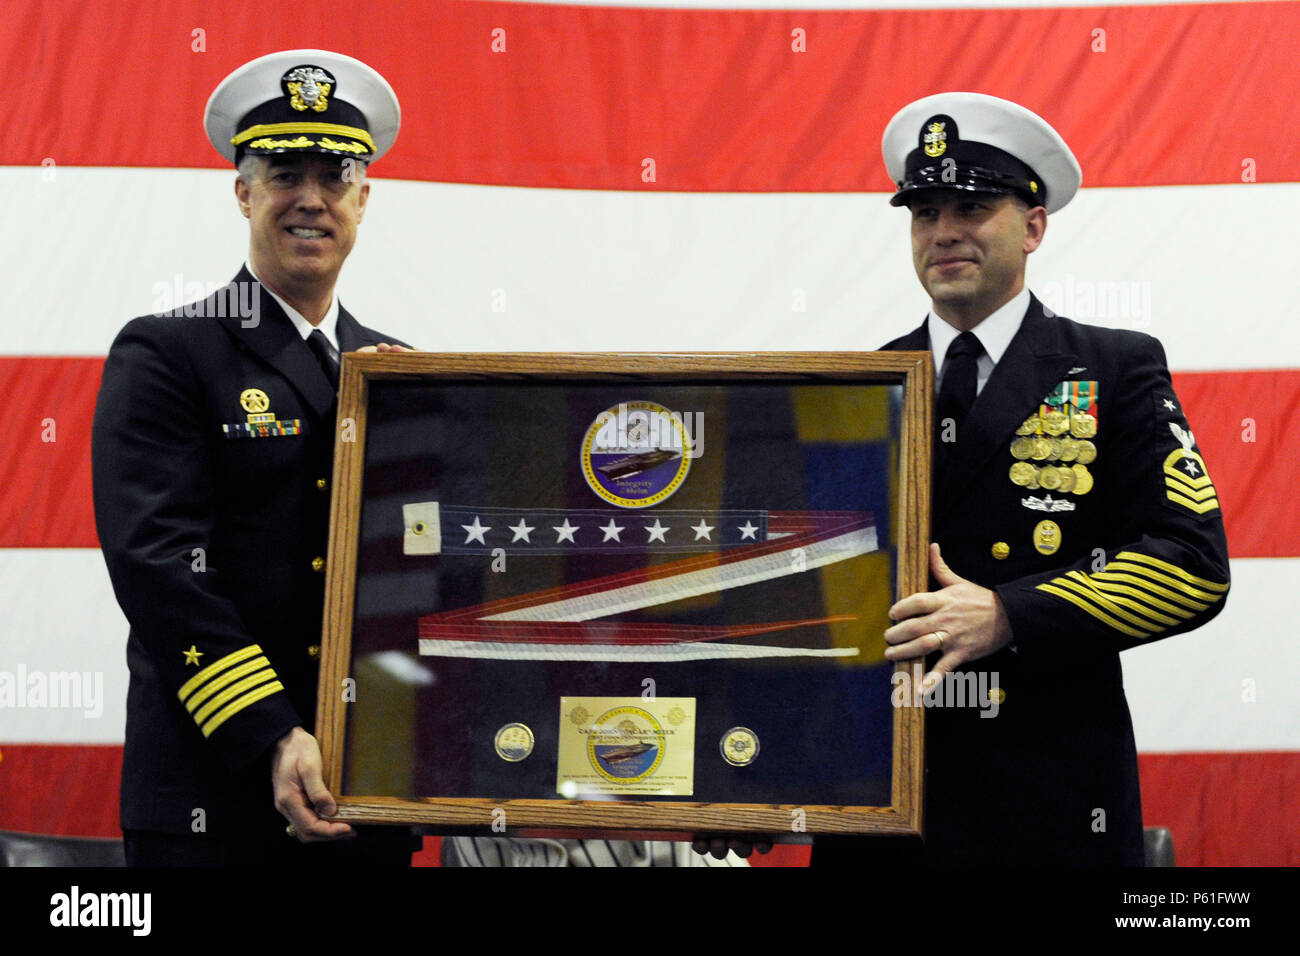 NEWPORT NEWS, Va., (April 8, 2016) Capt. John F. Meier is presented with the ship's pennant during a change of command ceremony in Pre-Commissioning Unit Gerald R. Ford's (CVN 78) hangar bay.  Ford is the first of a new class of aircraft carriers currently under construction by Huntington Ingalls Newport News Shipbuilding. (U.S. Navy photo by Mass Communication Specialist Seaman Cathrine Mae O. Campbell/Released) - Stock Image